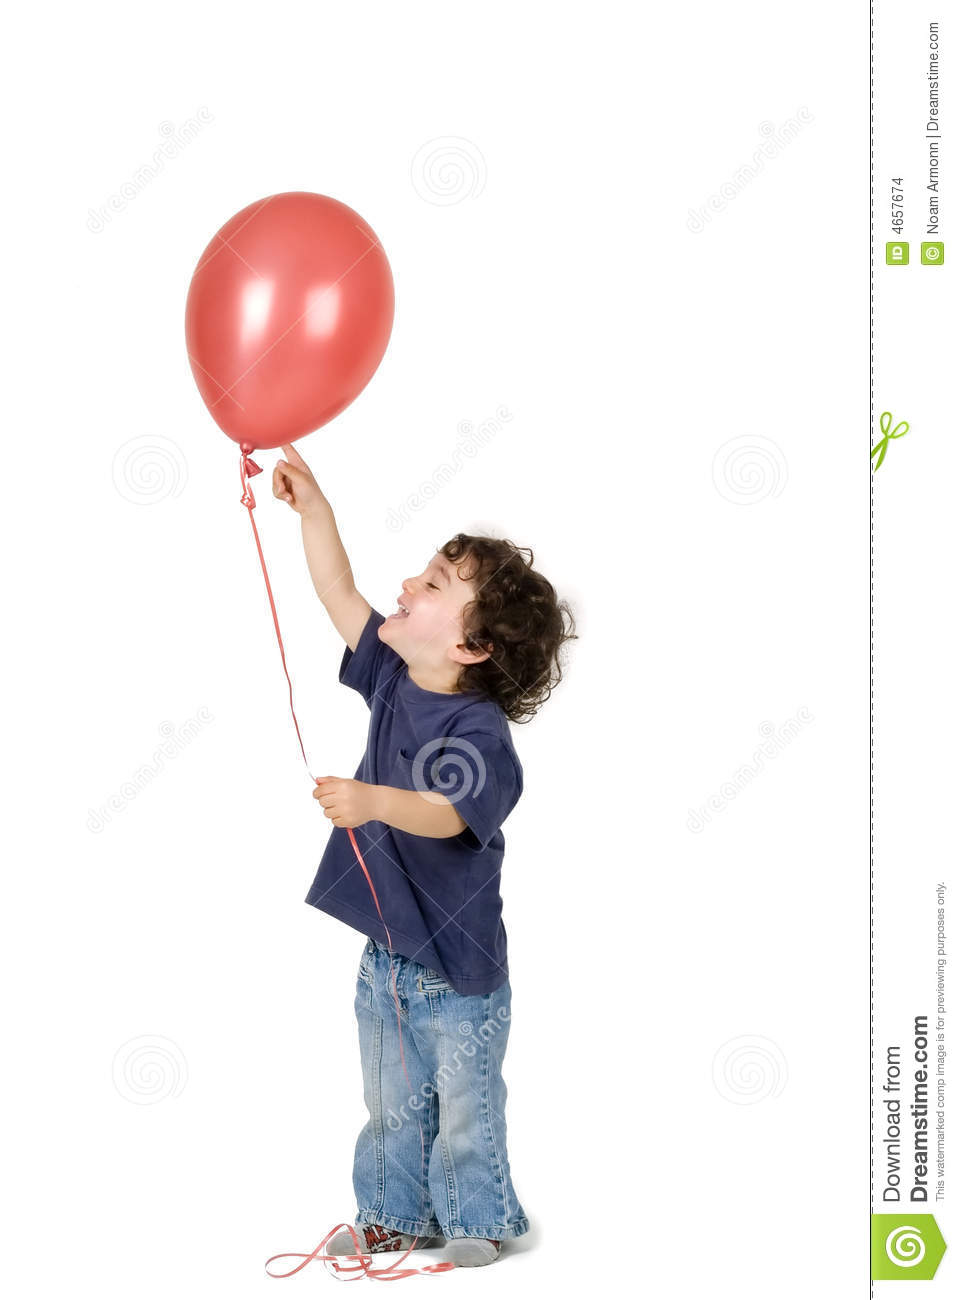 Boy pictures balloon of